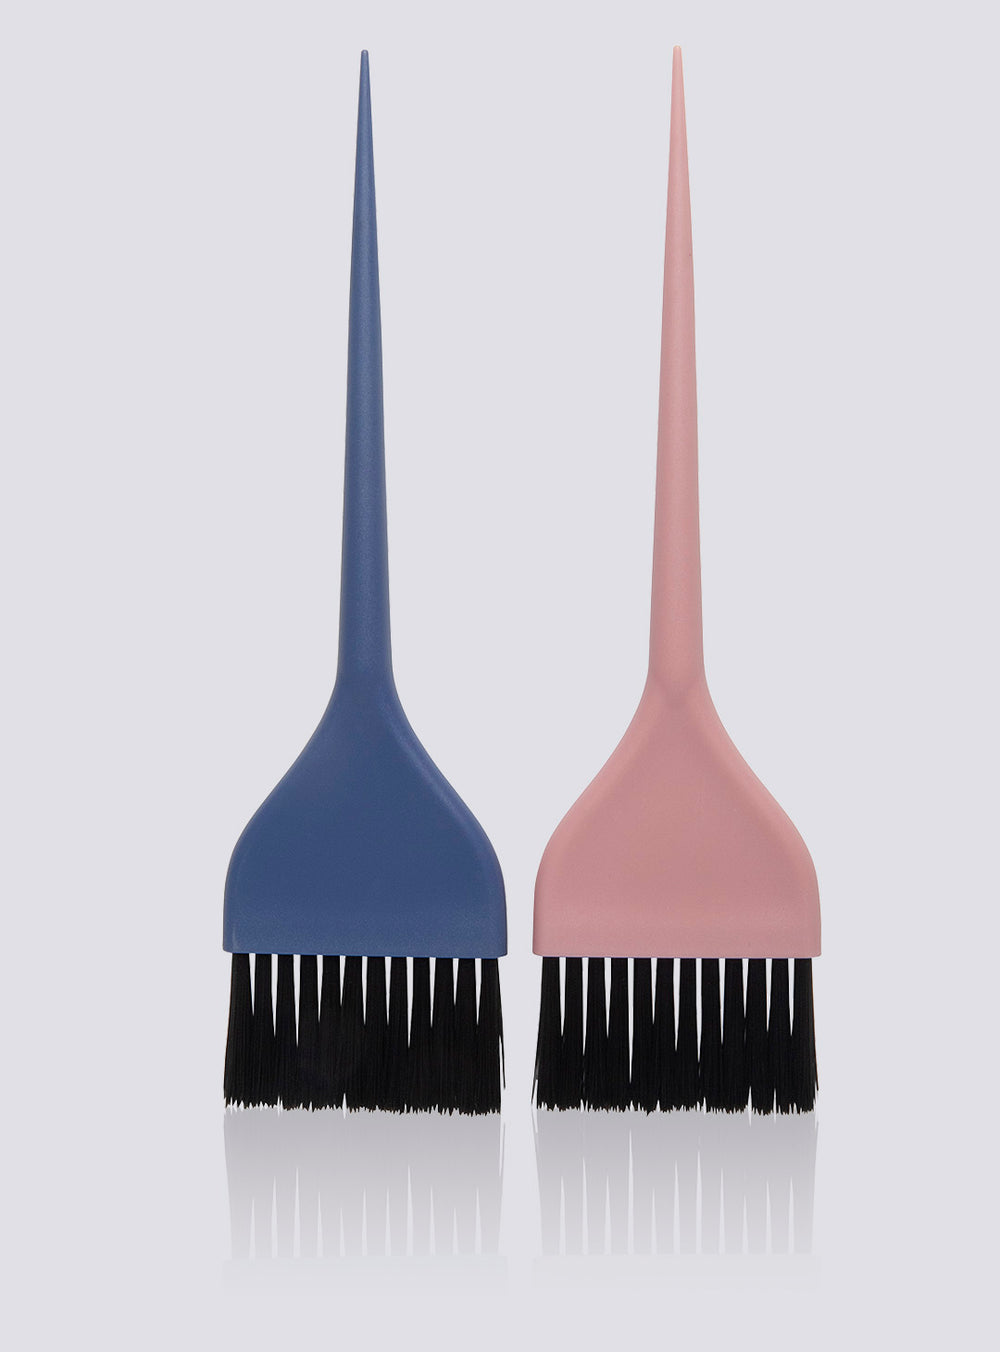 "Fromm Pro Professional Salon 2 1/4"" Soft Pastel Color Brush 2 Pack in Blue & Pink"